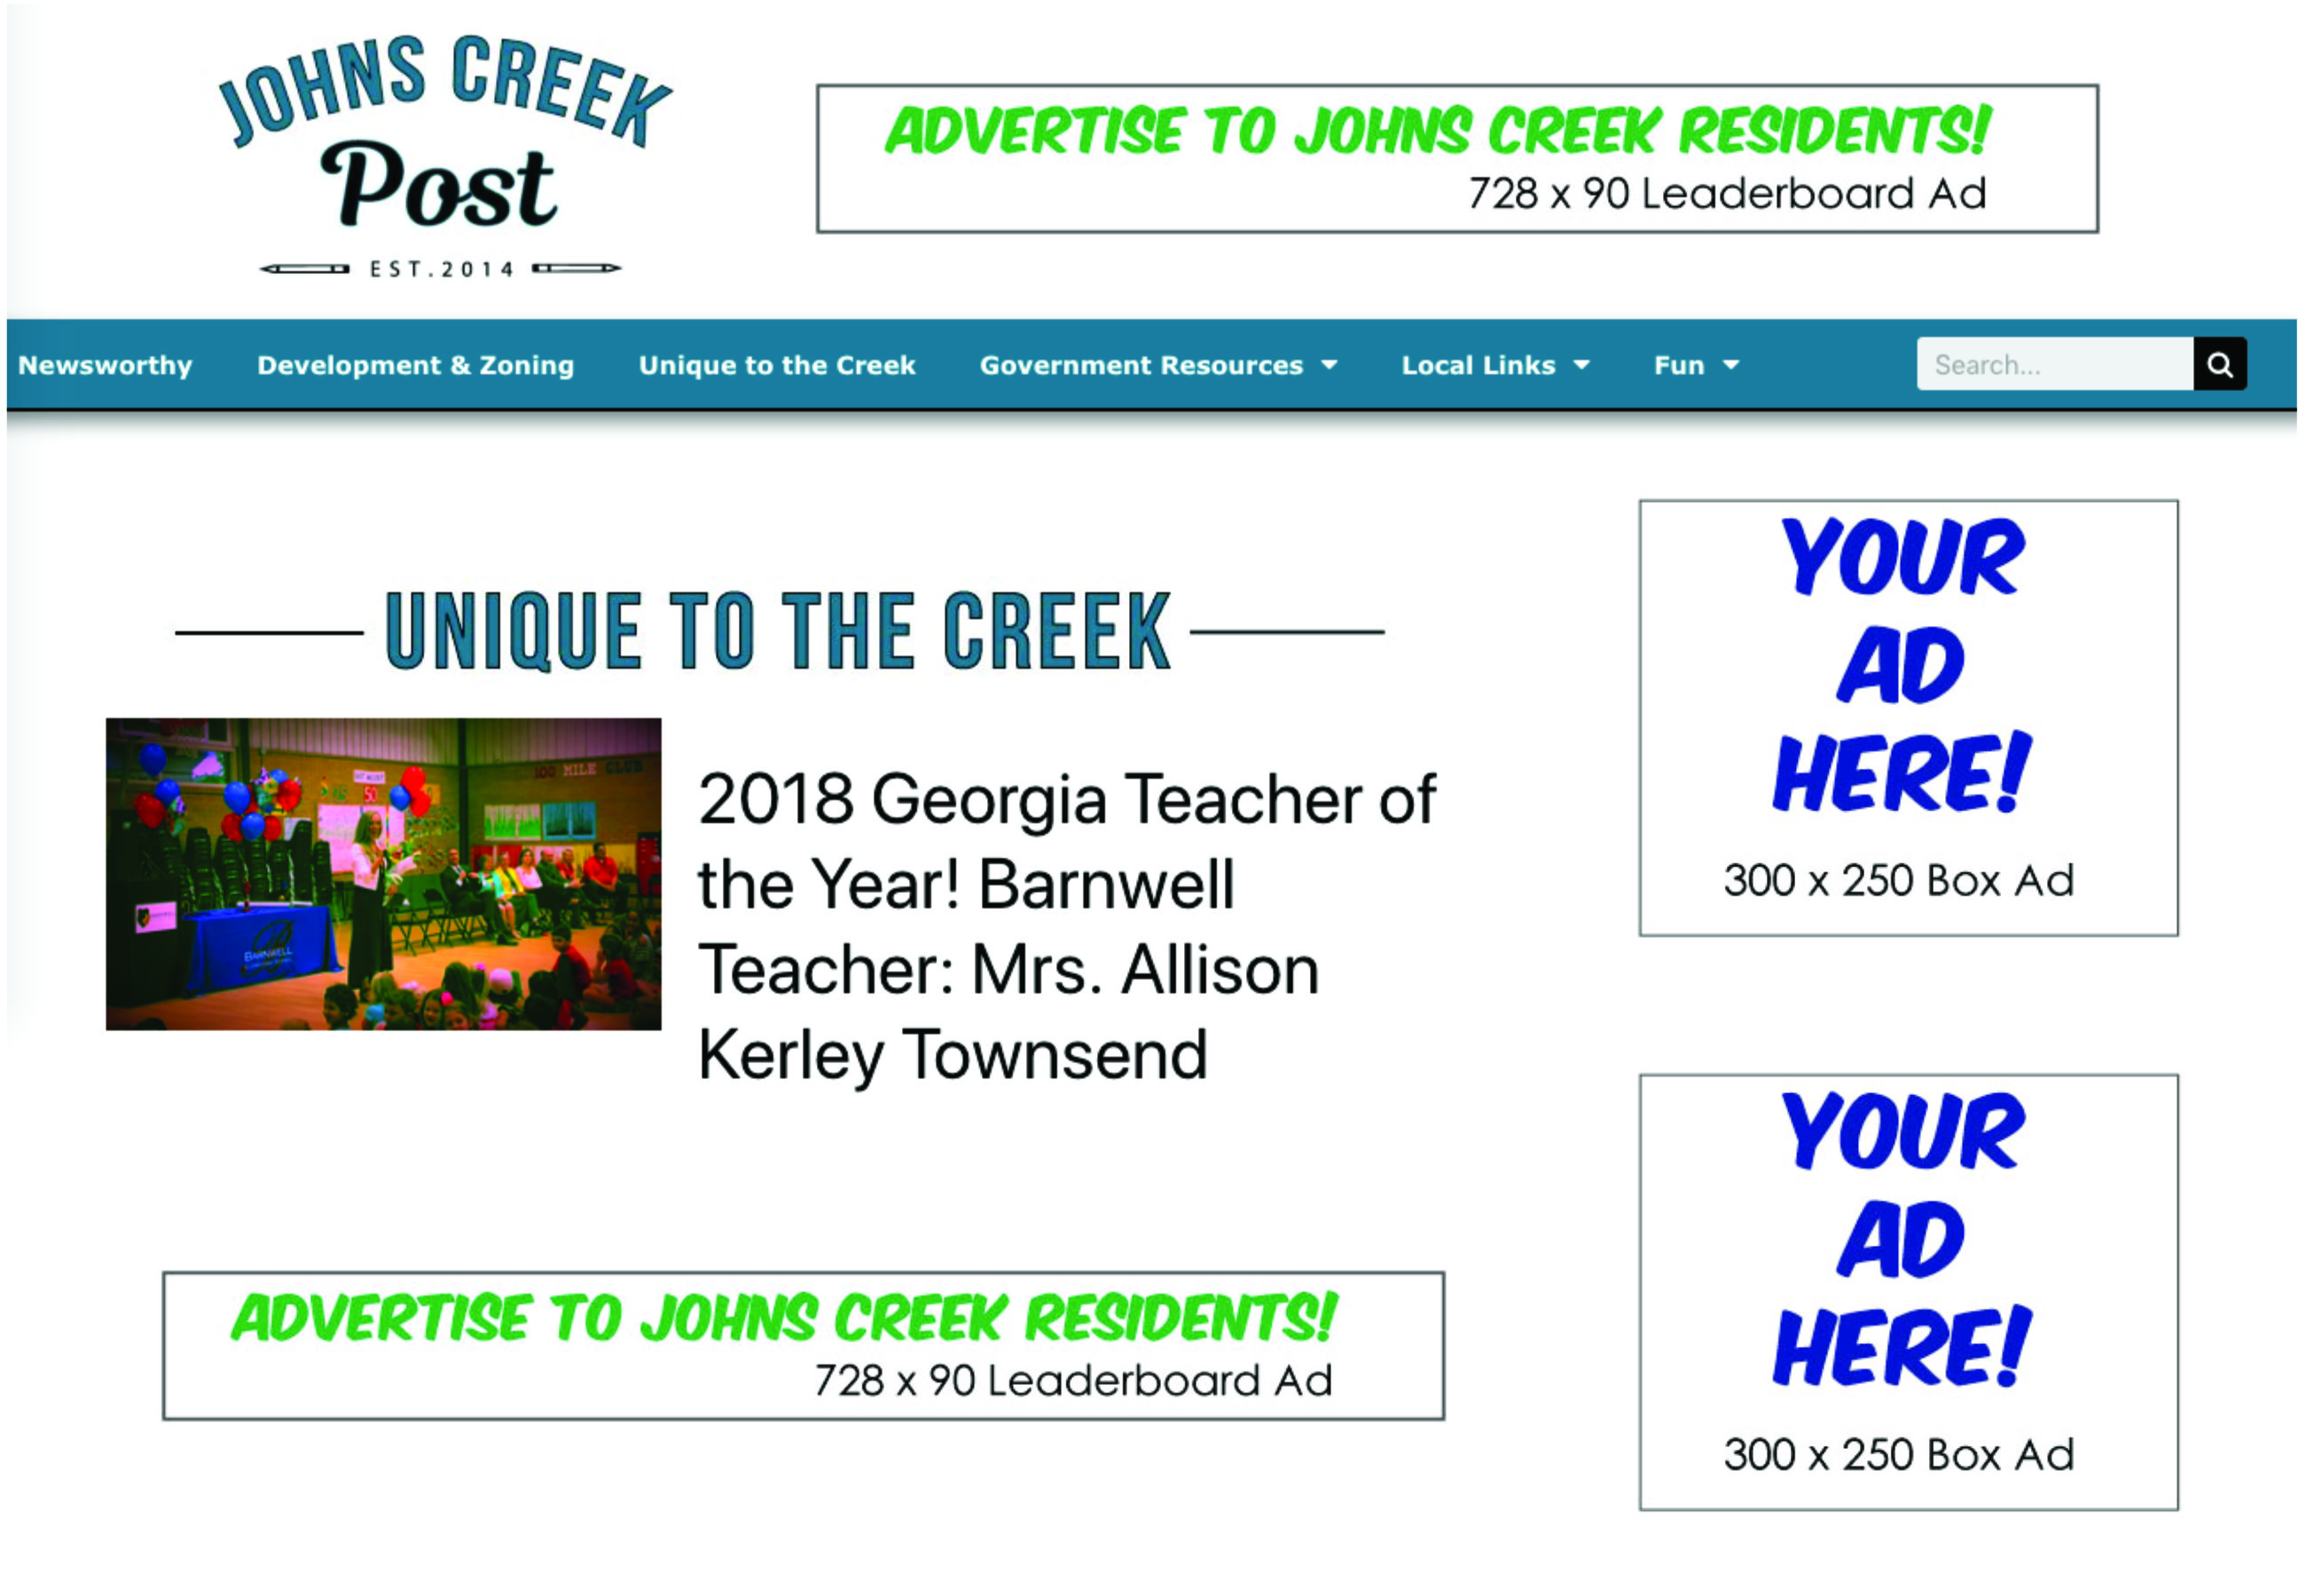 Johns Creek Post Ad Spot Options